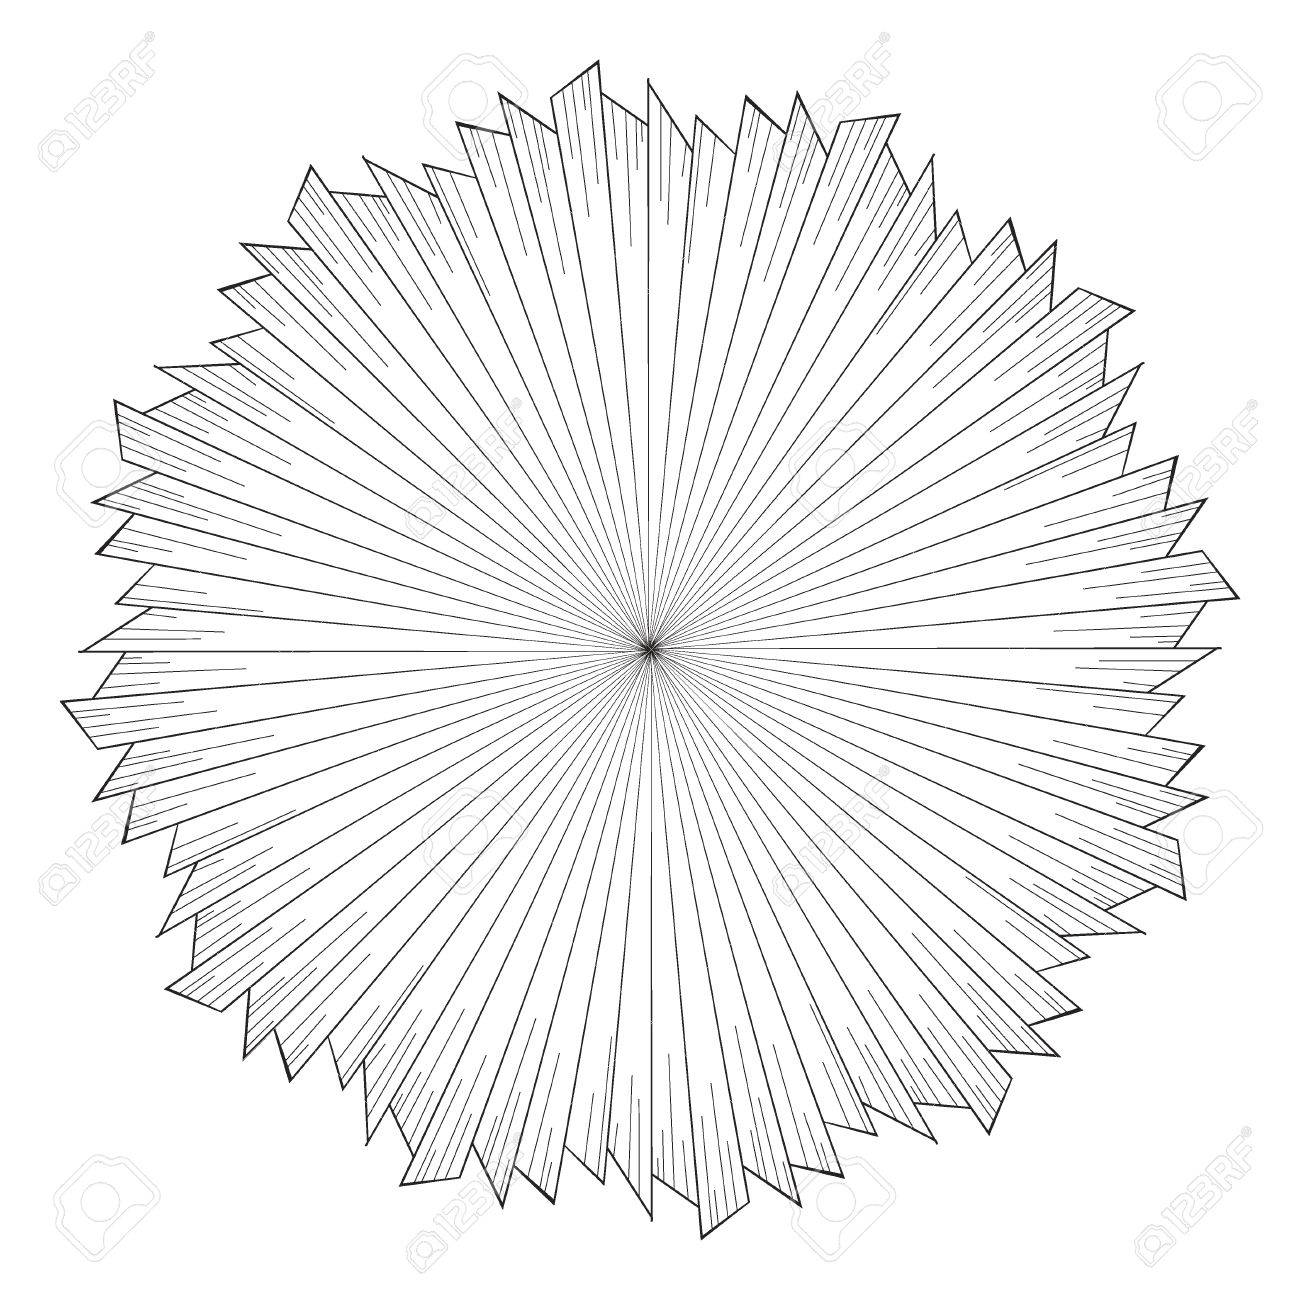 Rays Of Light As A Halo Hand Drawn Vector Illustration Isolated On